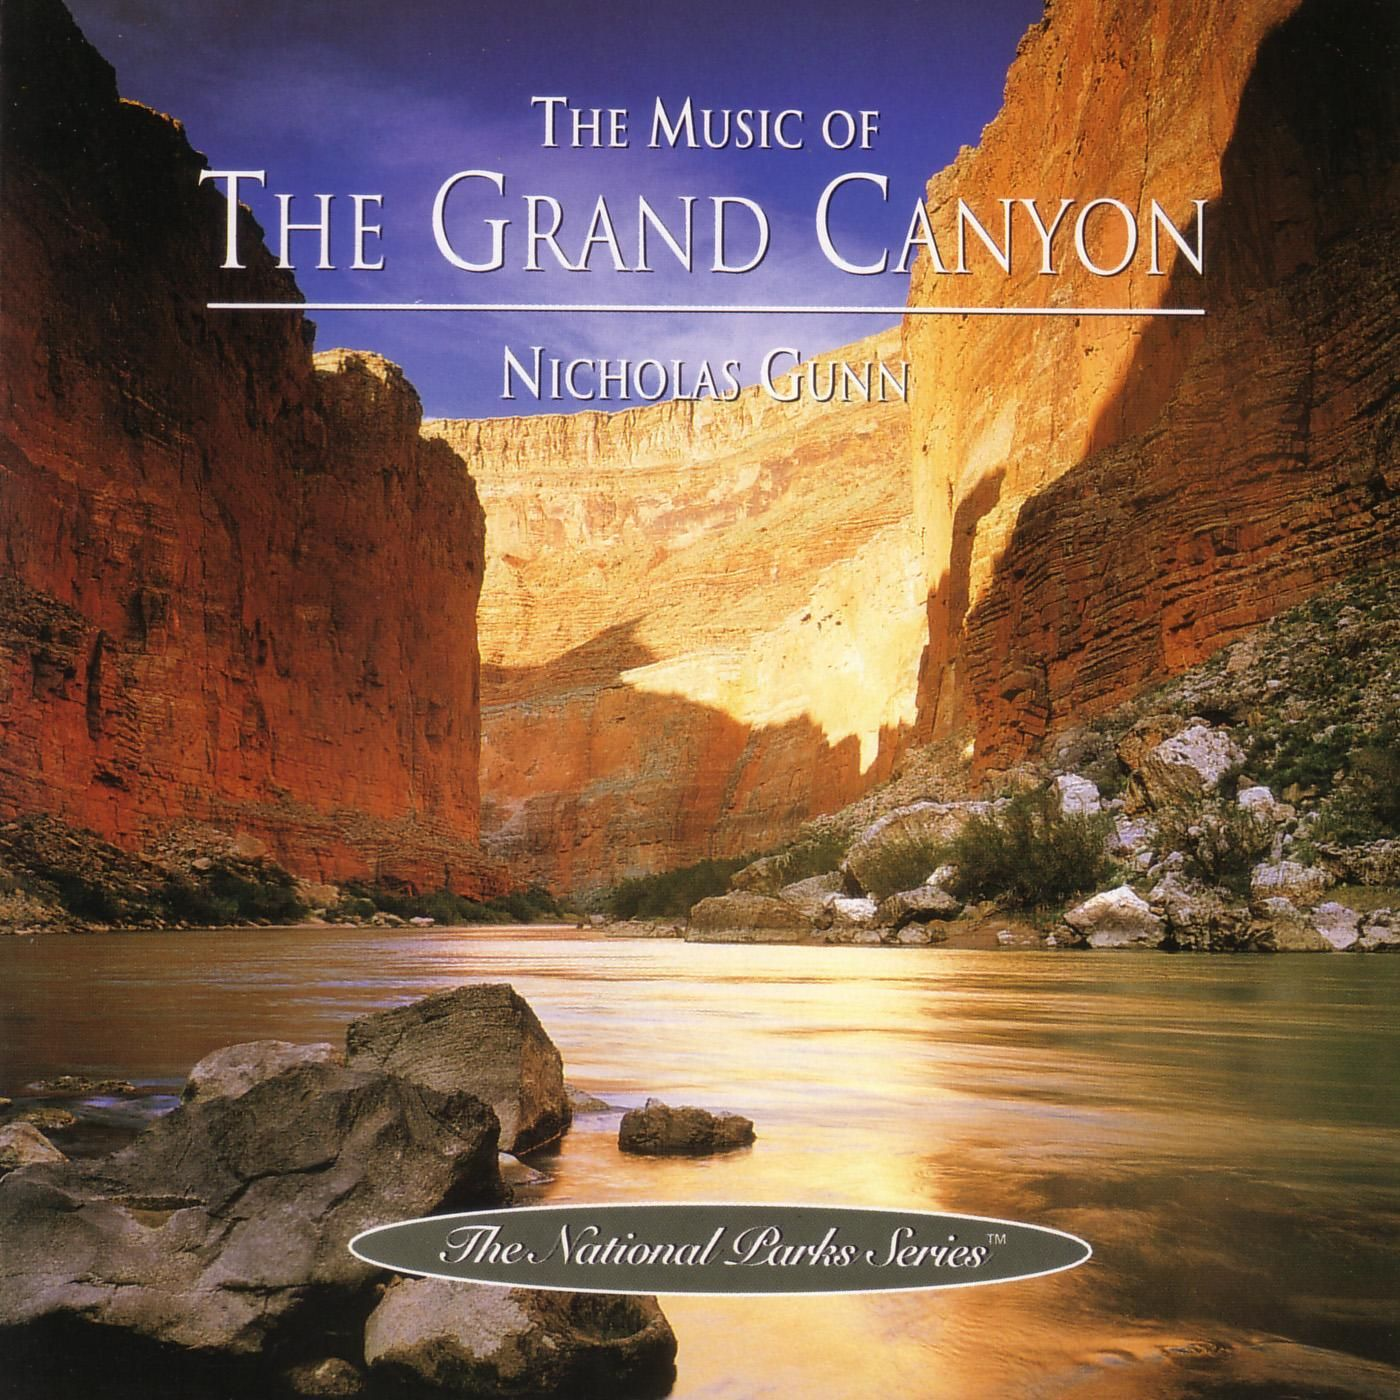 Nicholas Gunn - The music of the Grand Canyon | New age music. Country music videos. Music